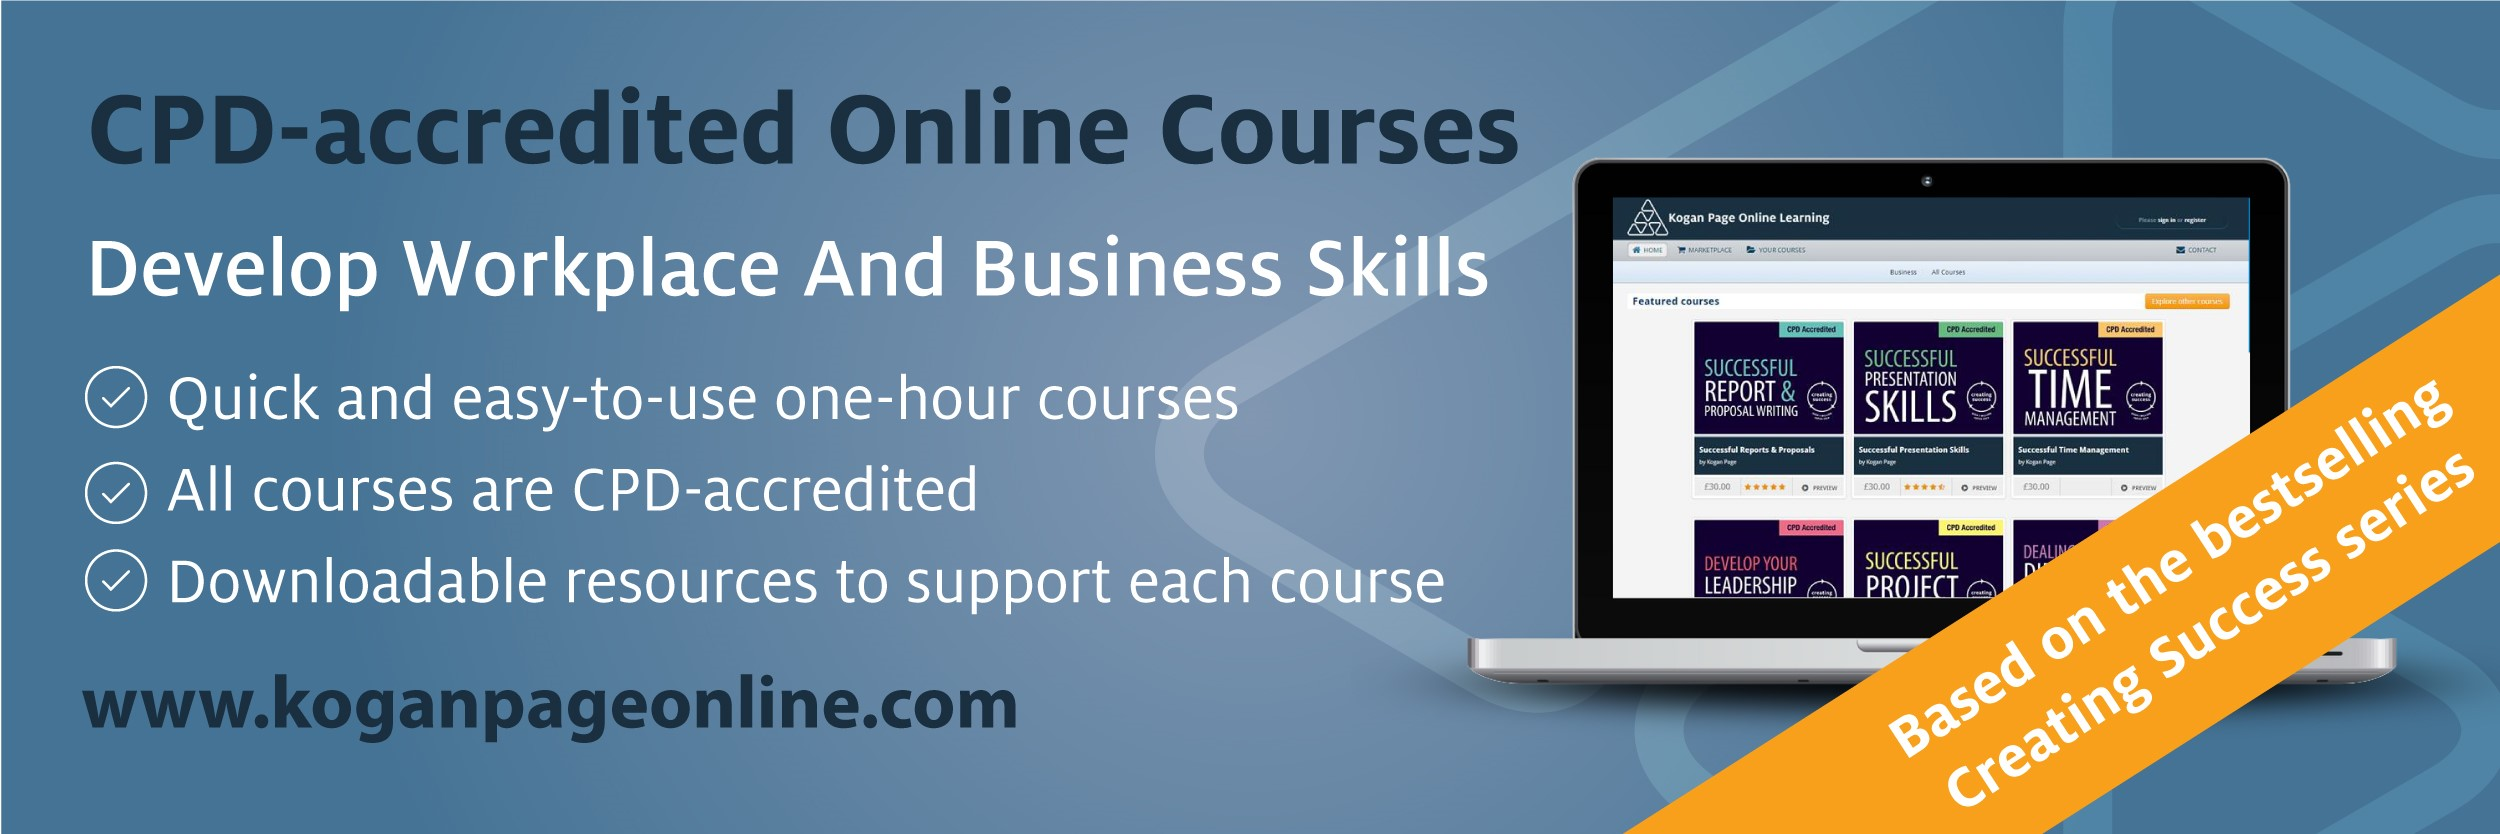 creating-success-online-courses-web-banner.jpg